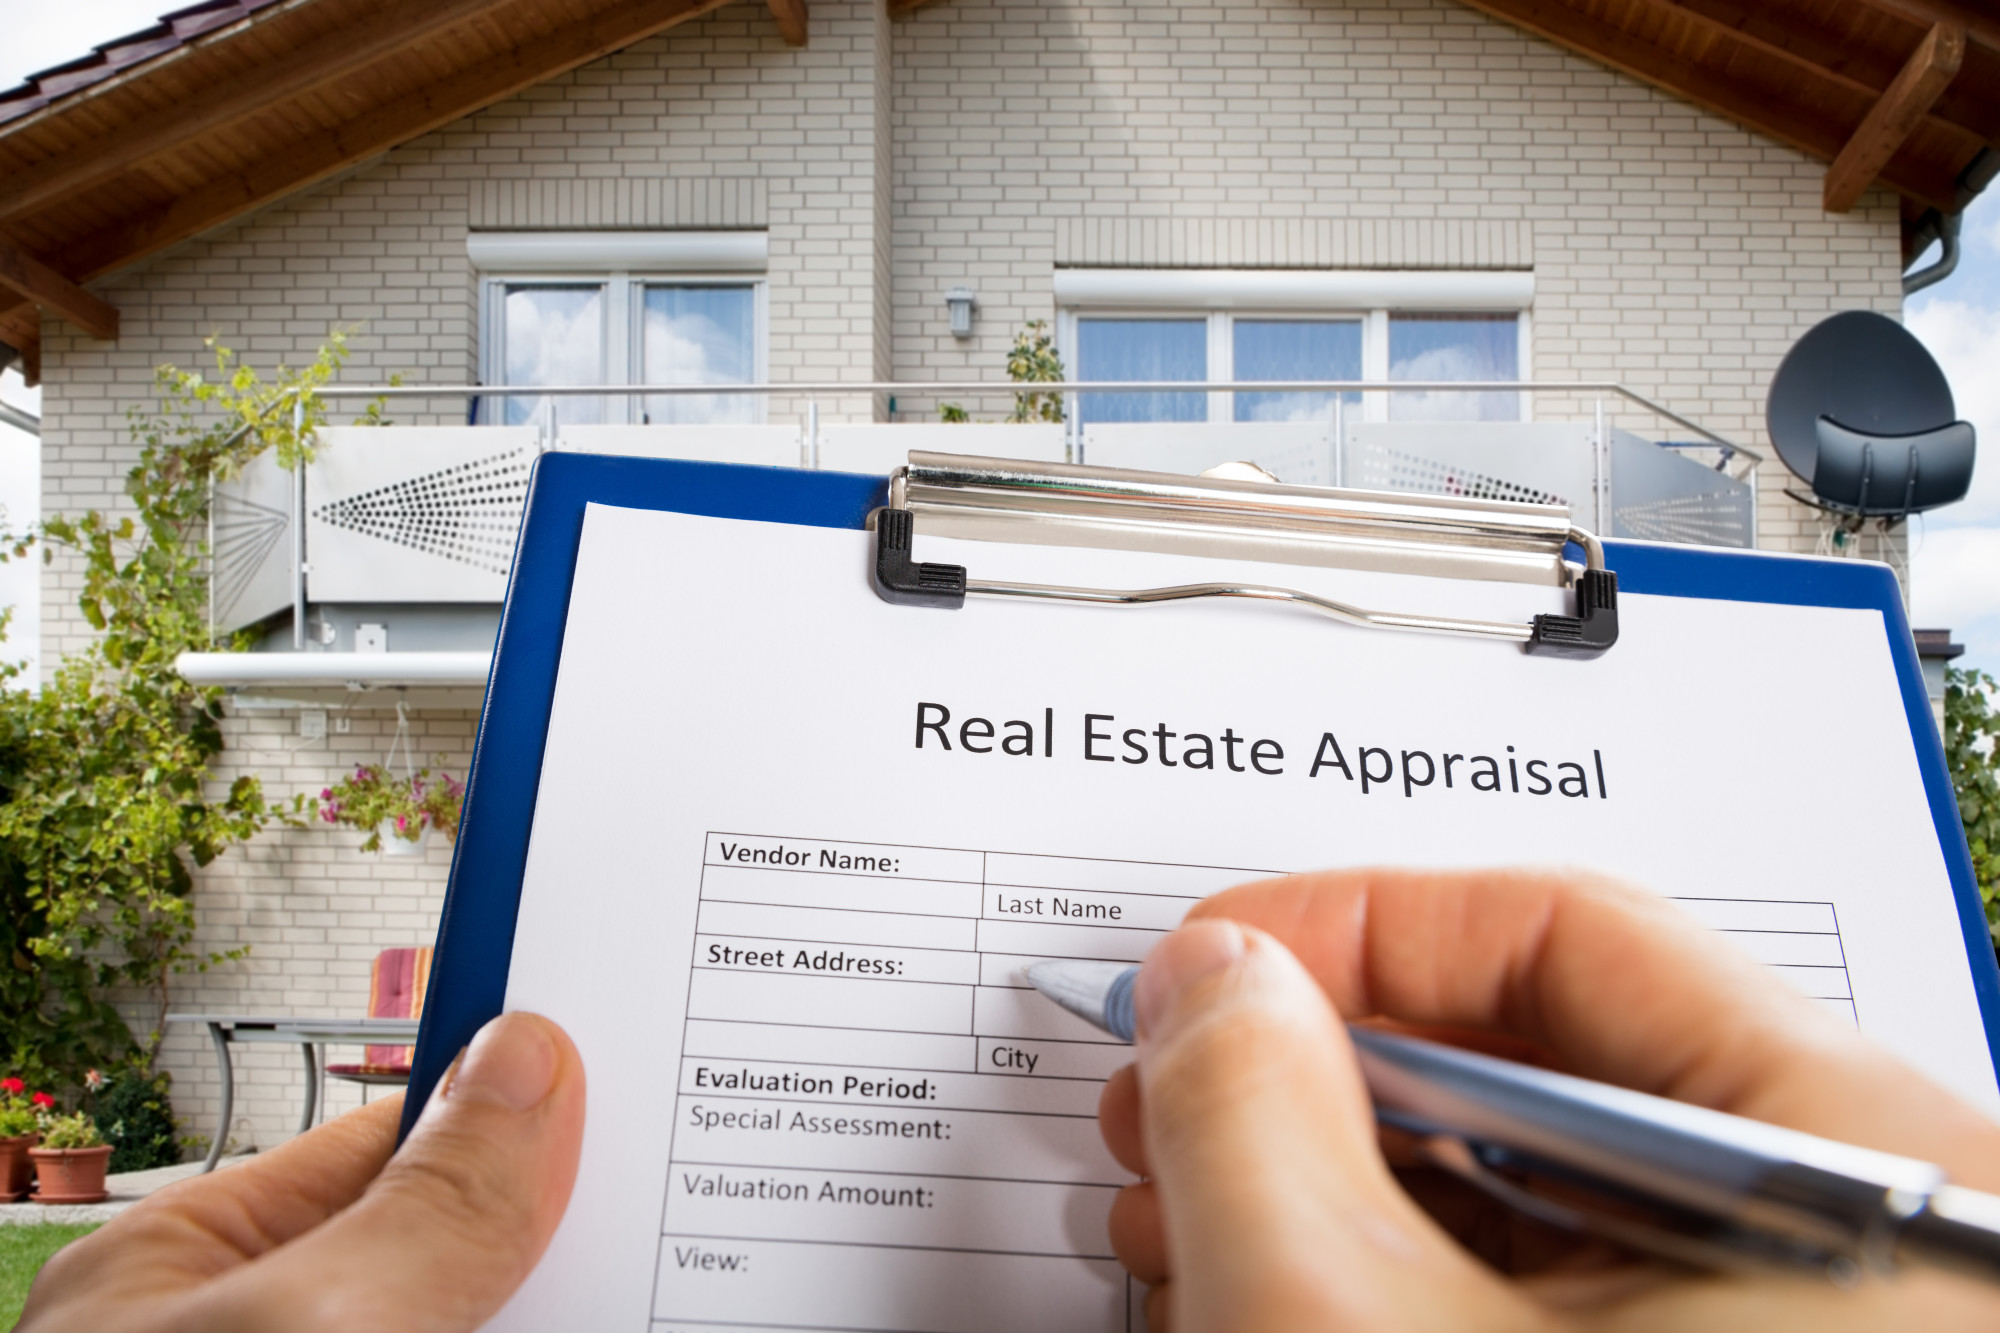 What Do Appraisers Look for When Valuing Your Home?